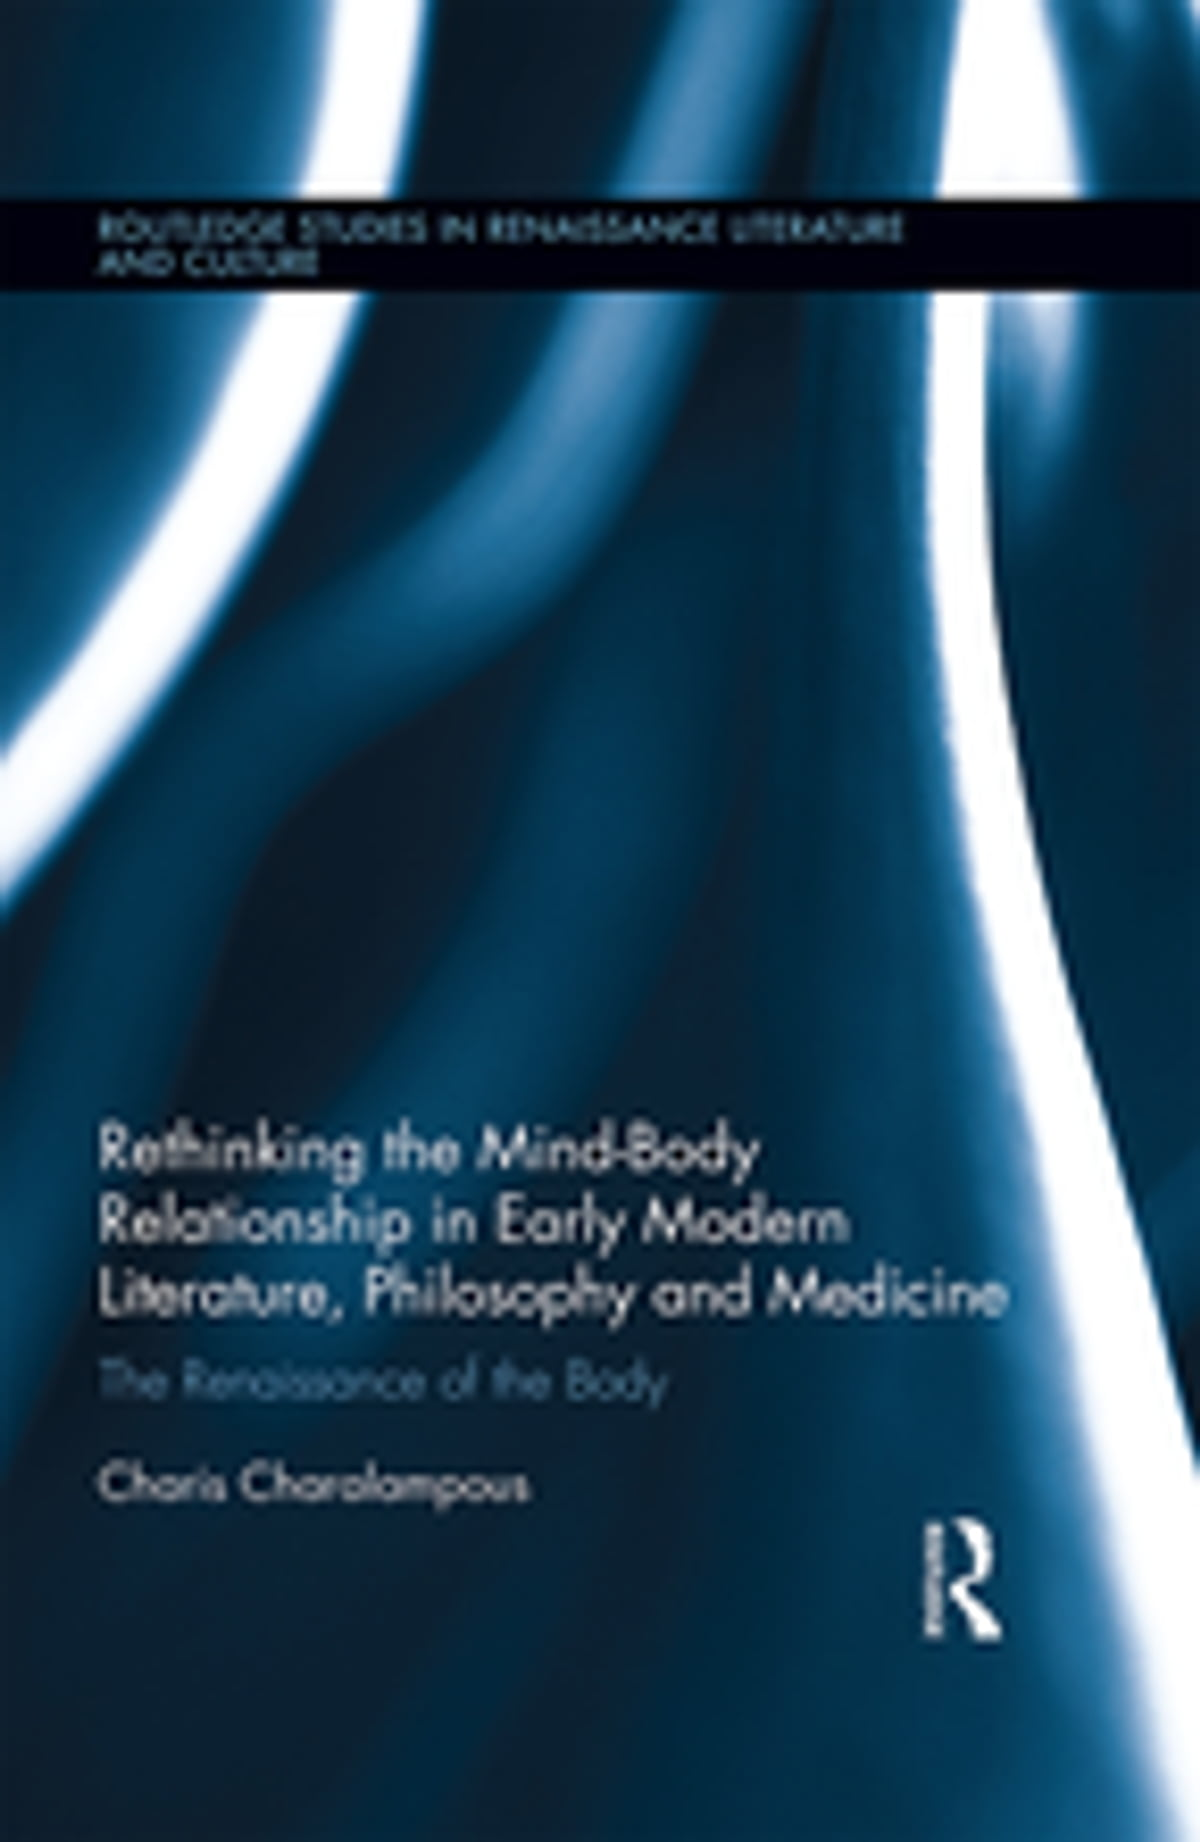 Philosophy and medicine: the relationship